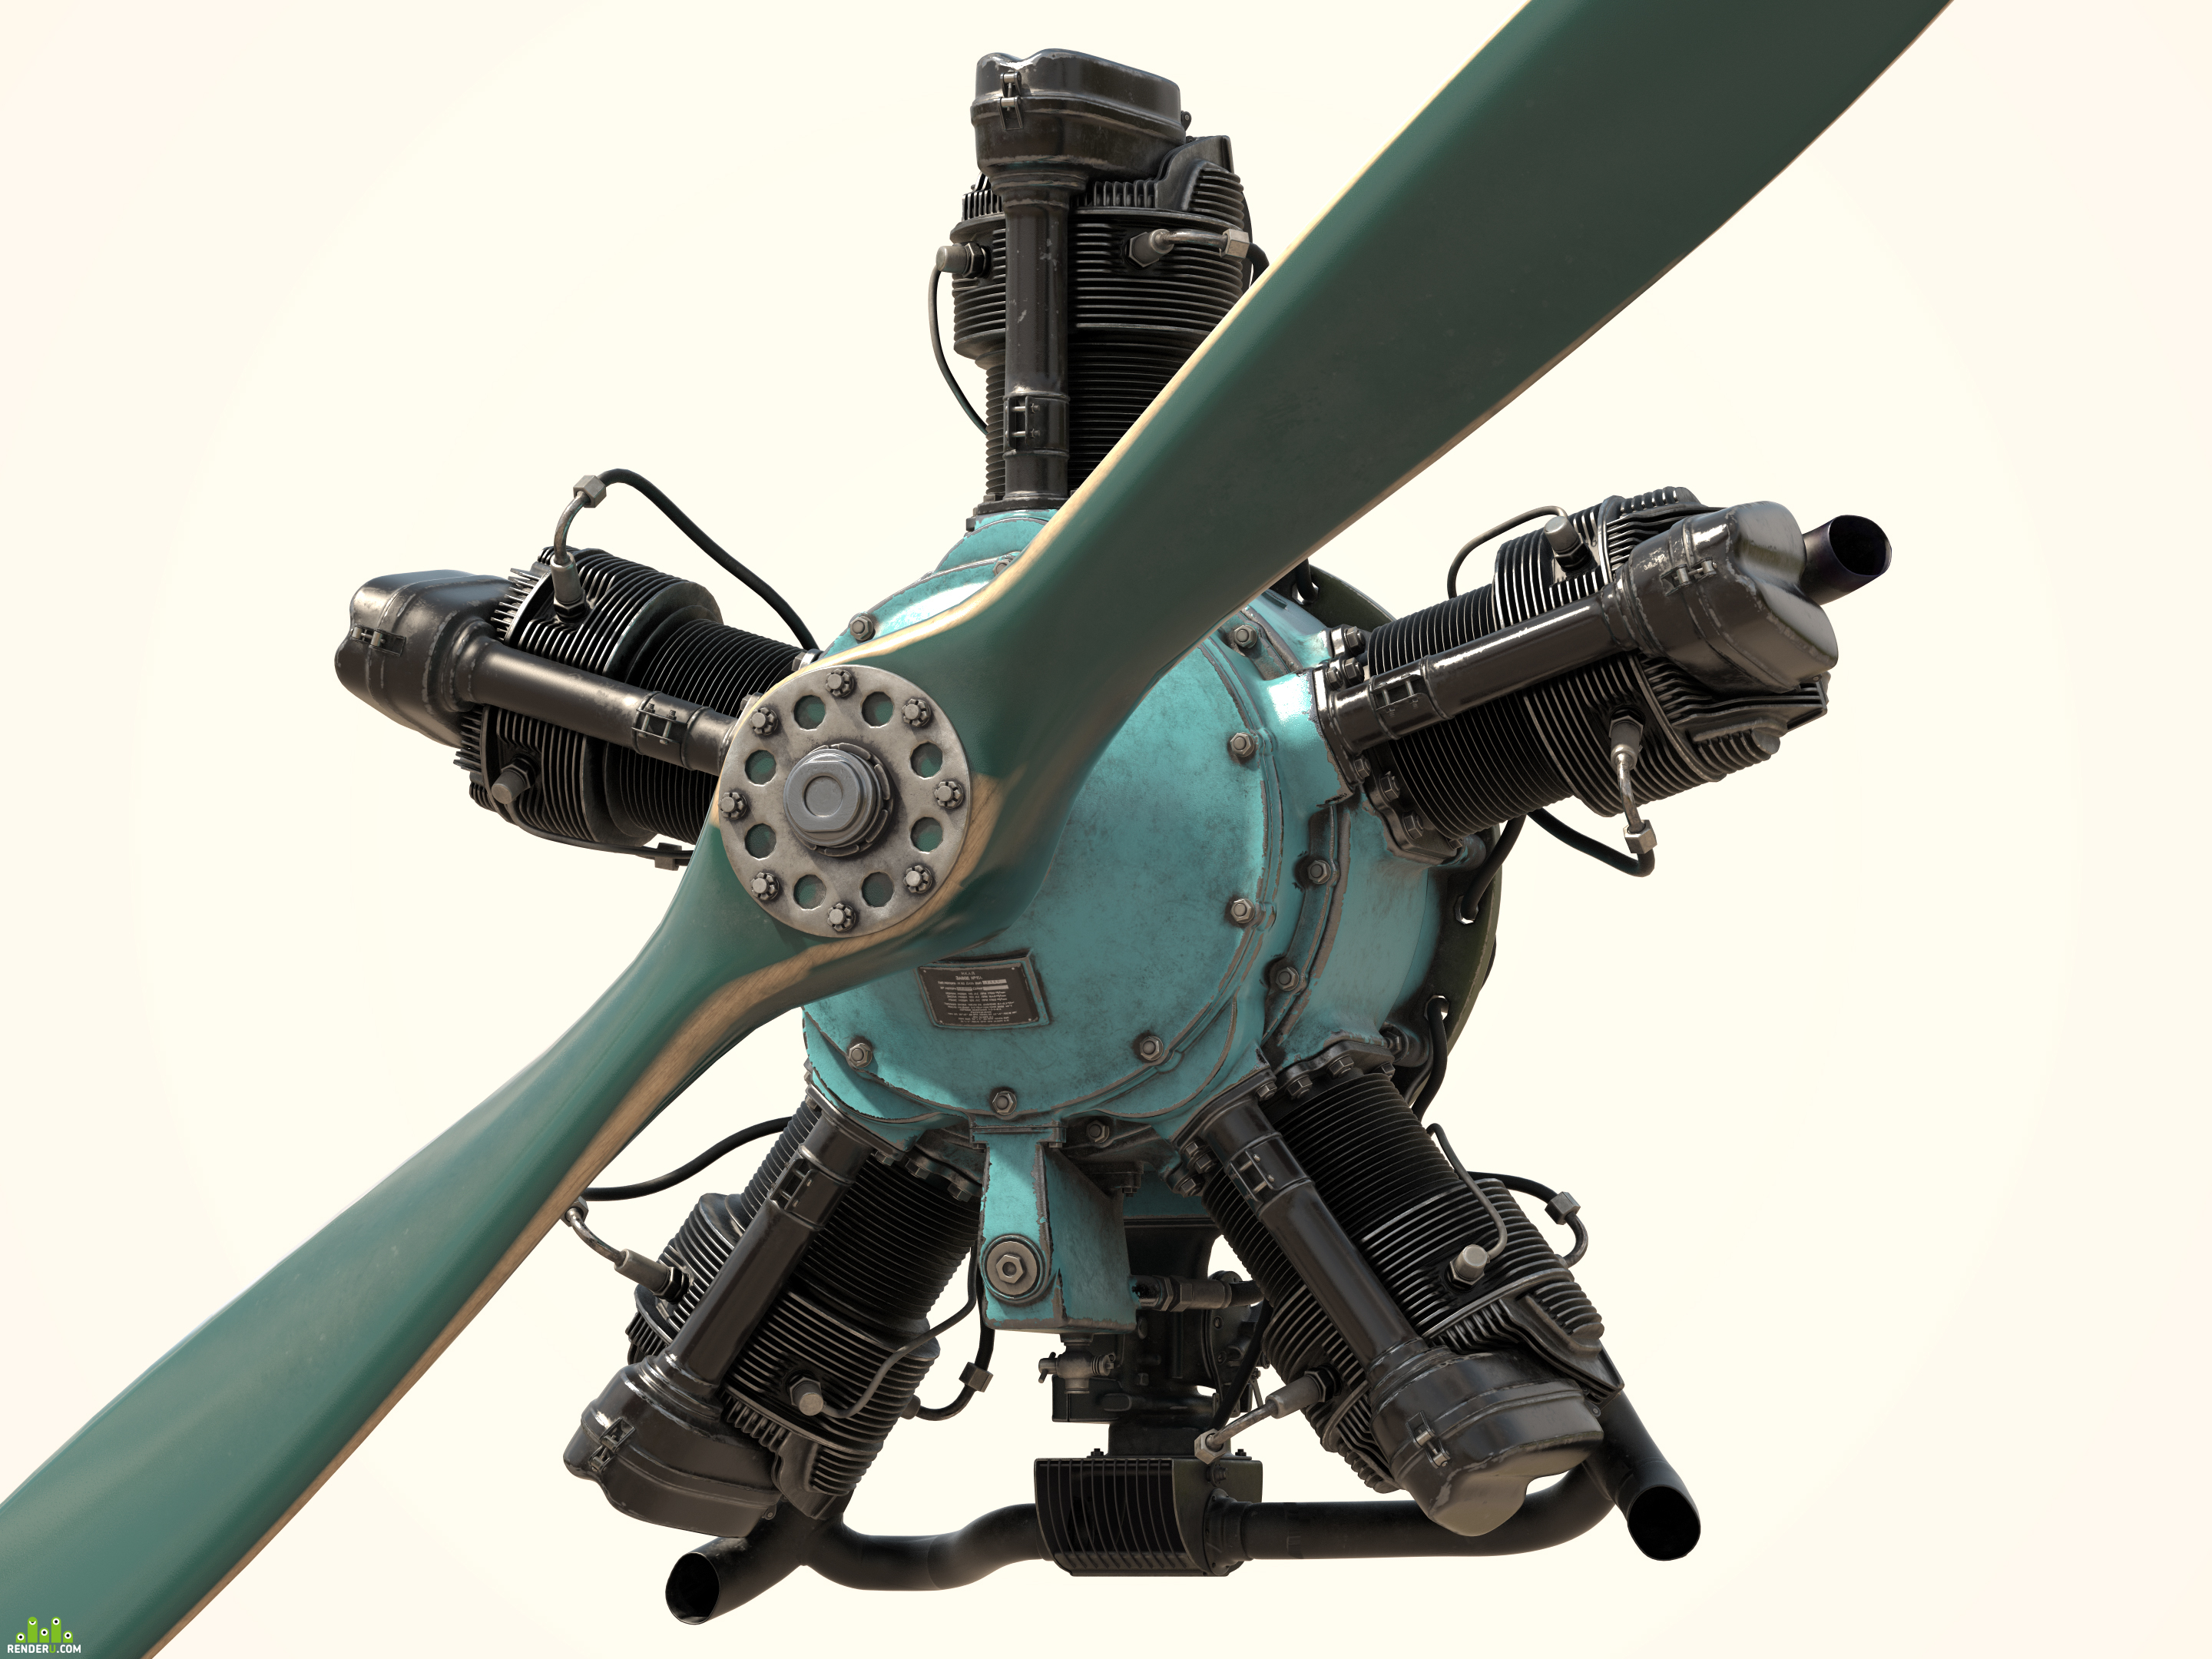 preview Aircraft engine M-11 3D model